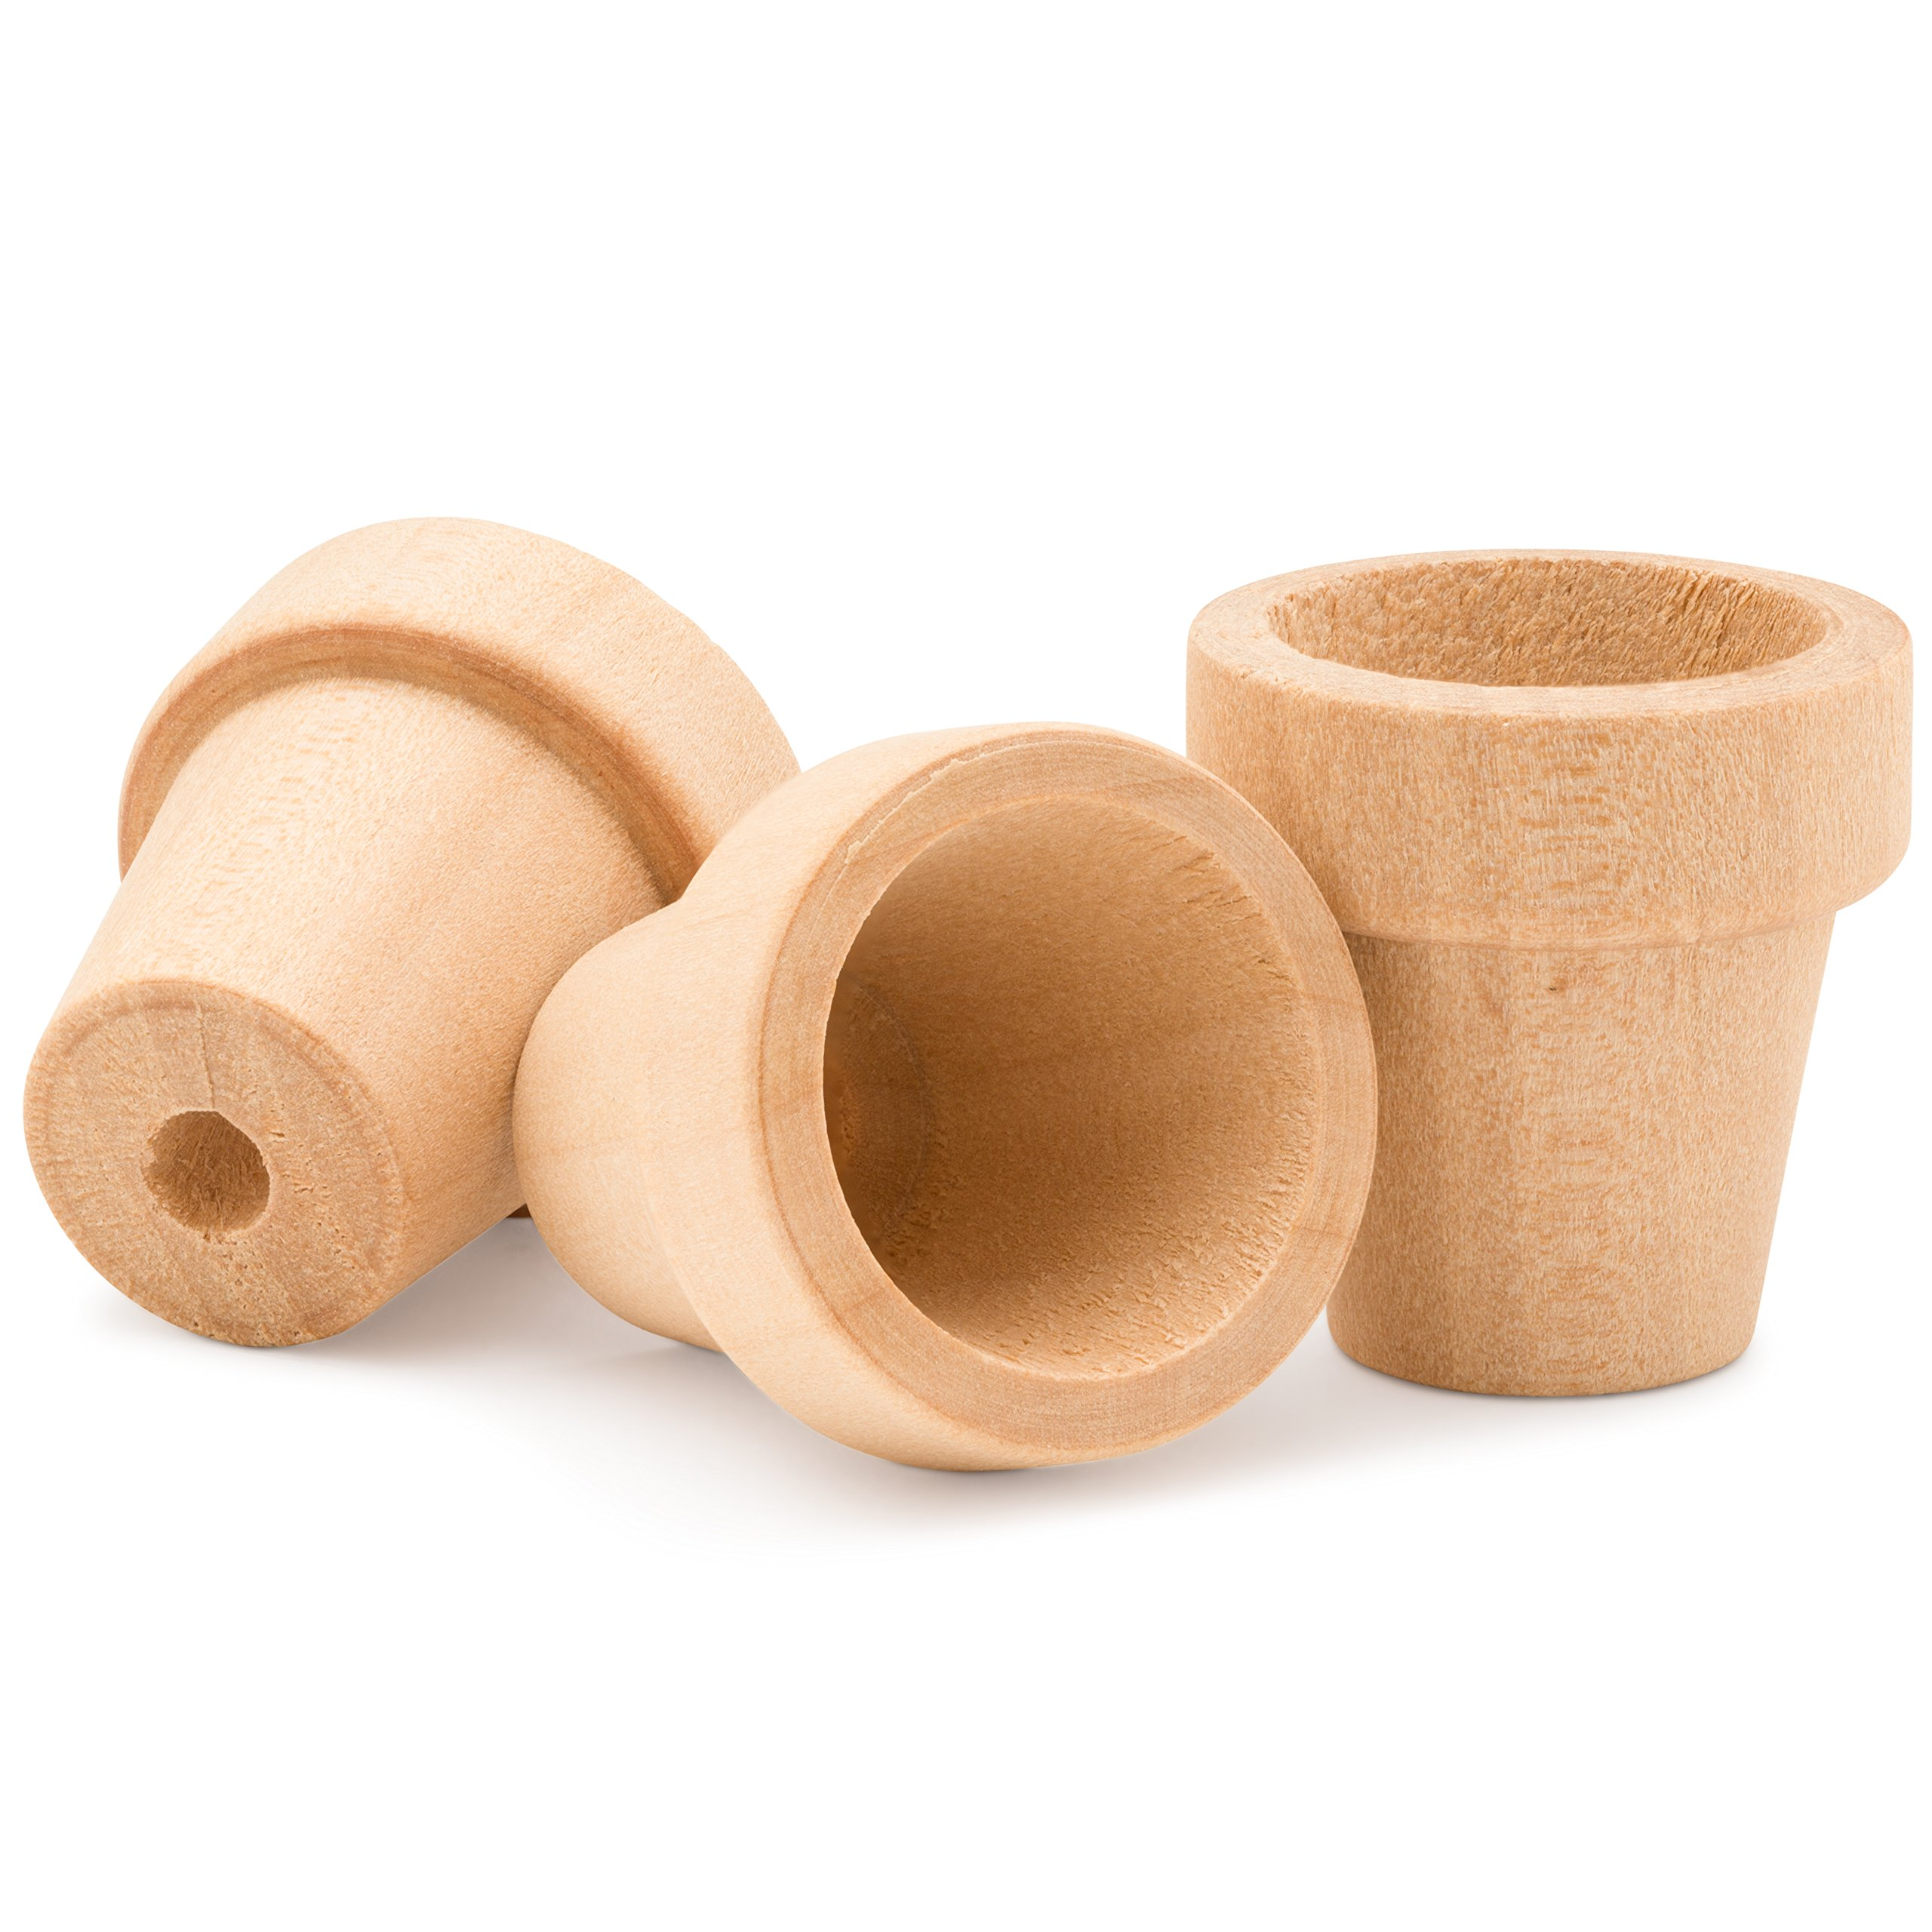 Craft Flower Pot - 2 inches Tall and 1-3/4 inch Wide at Opening - 100 Pack - Unfinished Wood Flower Pot- by Woodpeckers Crafts